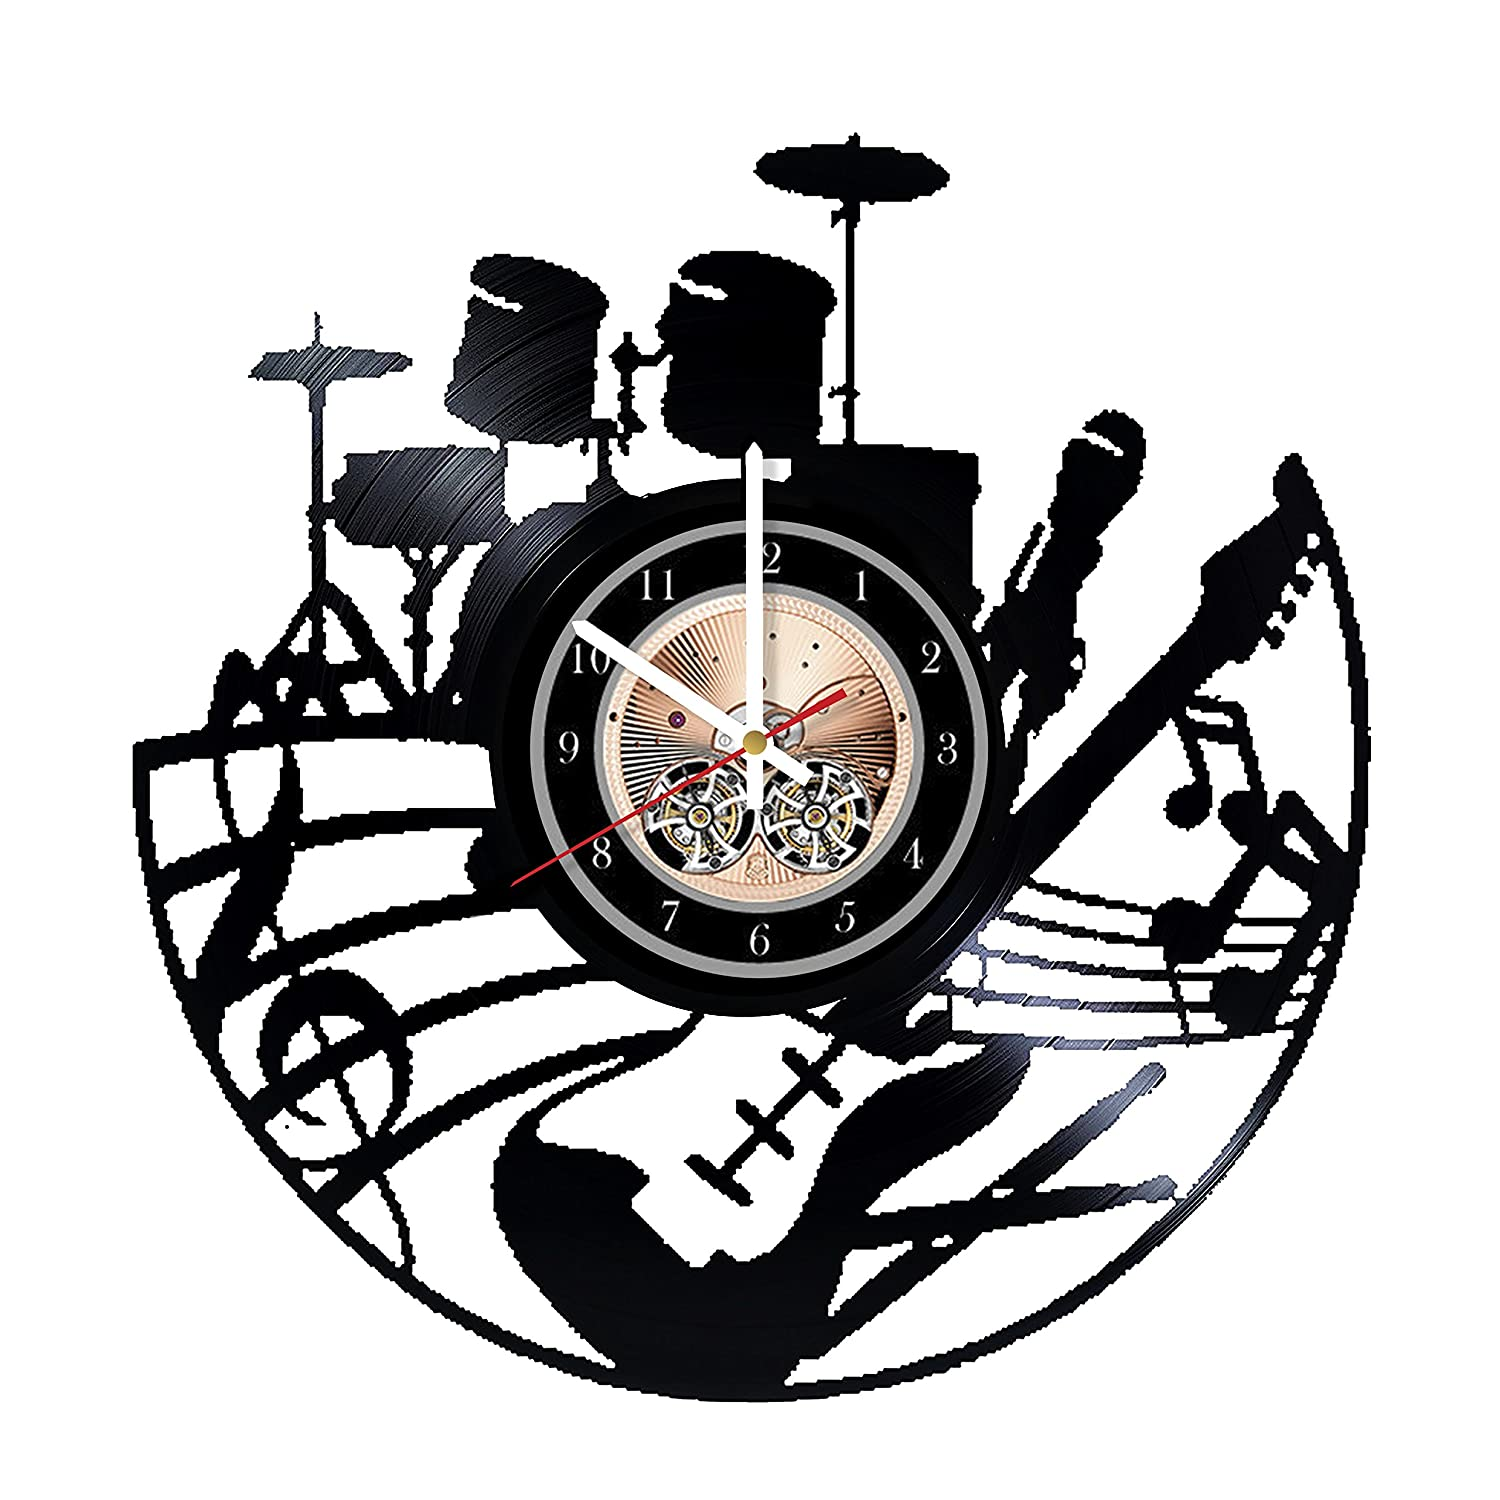 Musical Instruments HANDMADE Vinyl Record Wall Clock - Get unique bedroom or living room wall decor - Gift ideas for him and her